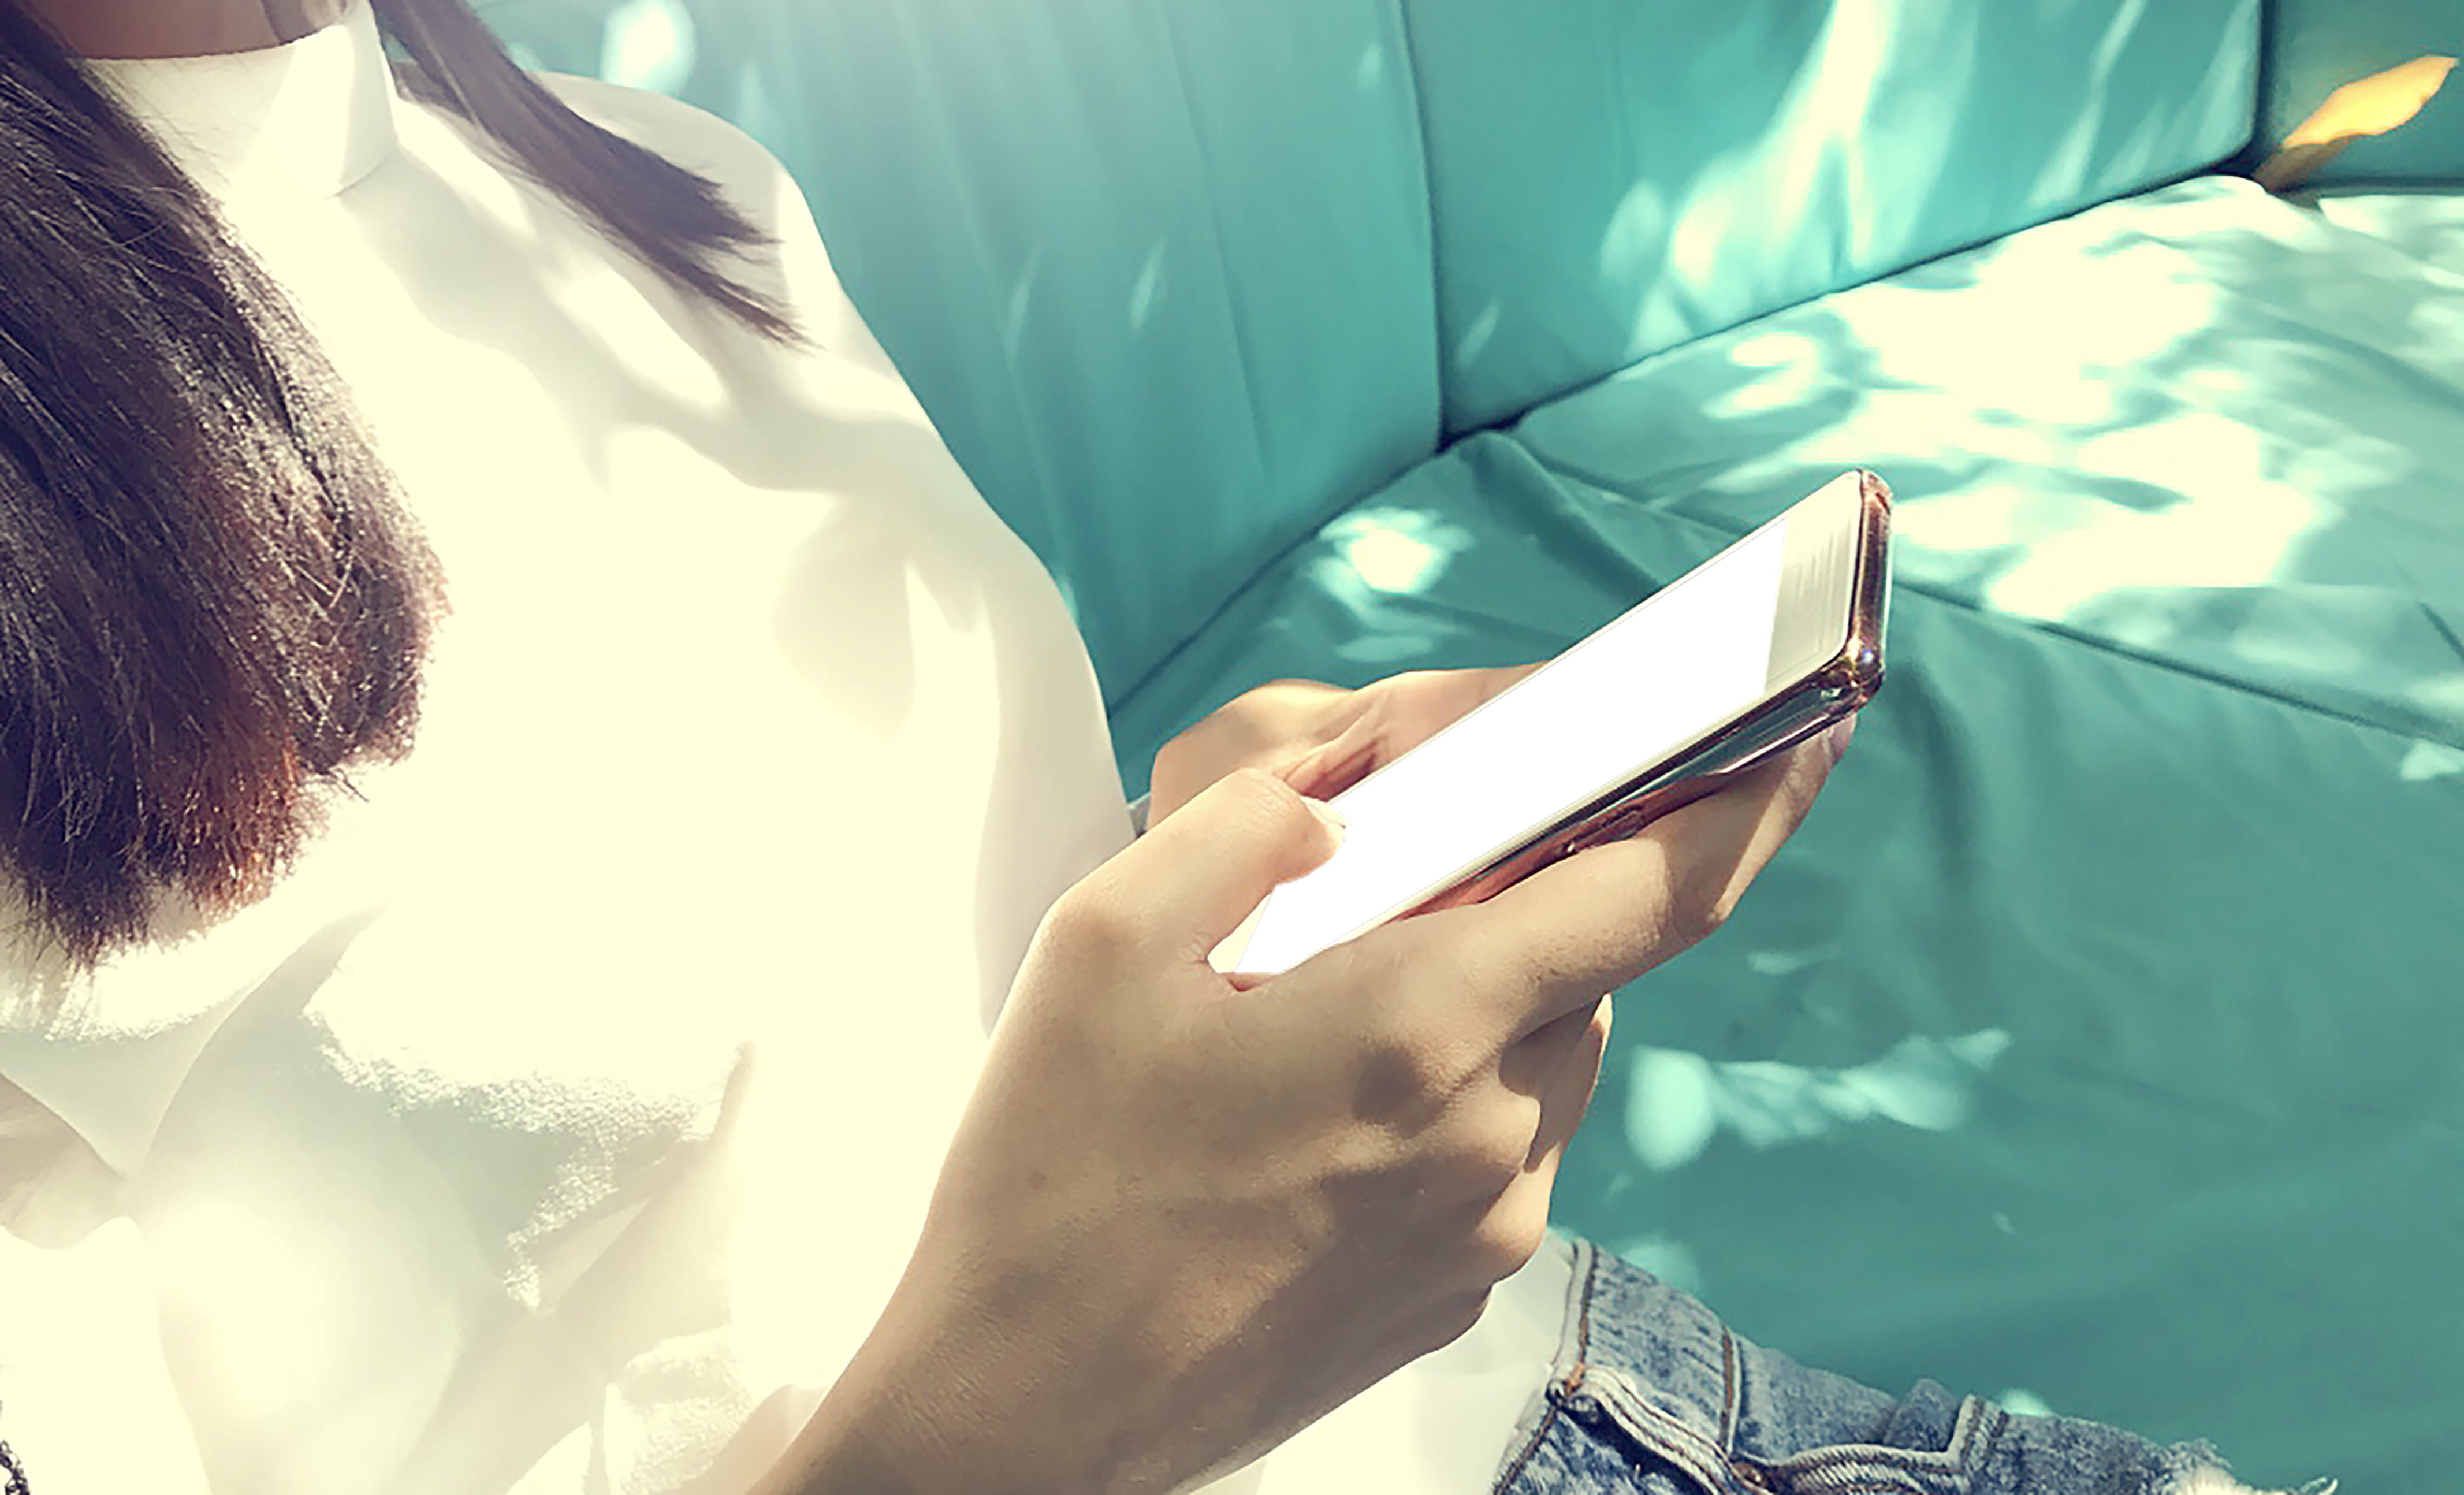 Woman Wearing White Top Holding Black Smartphone